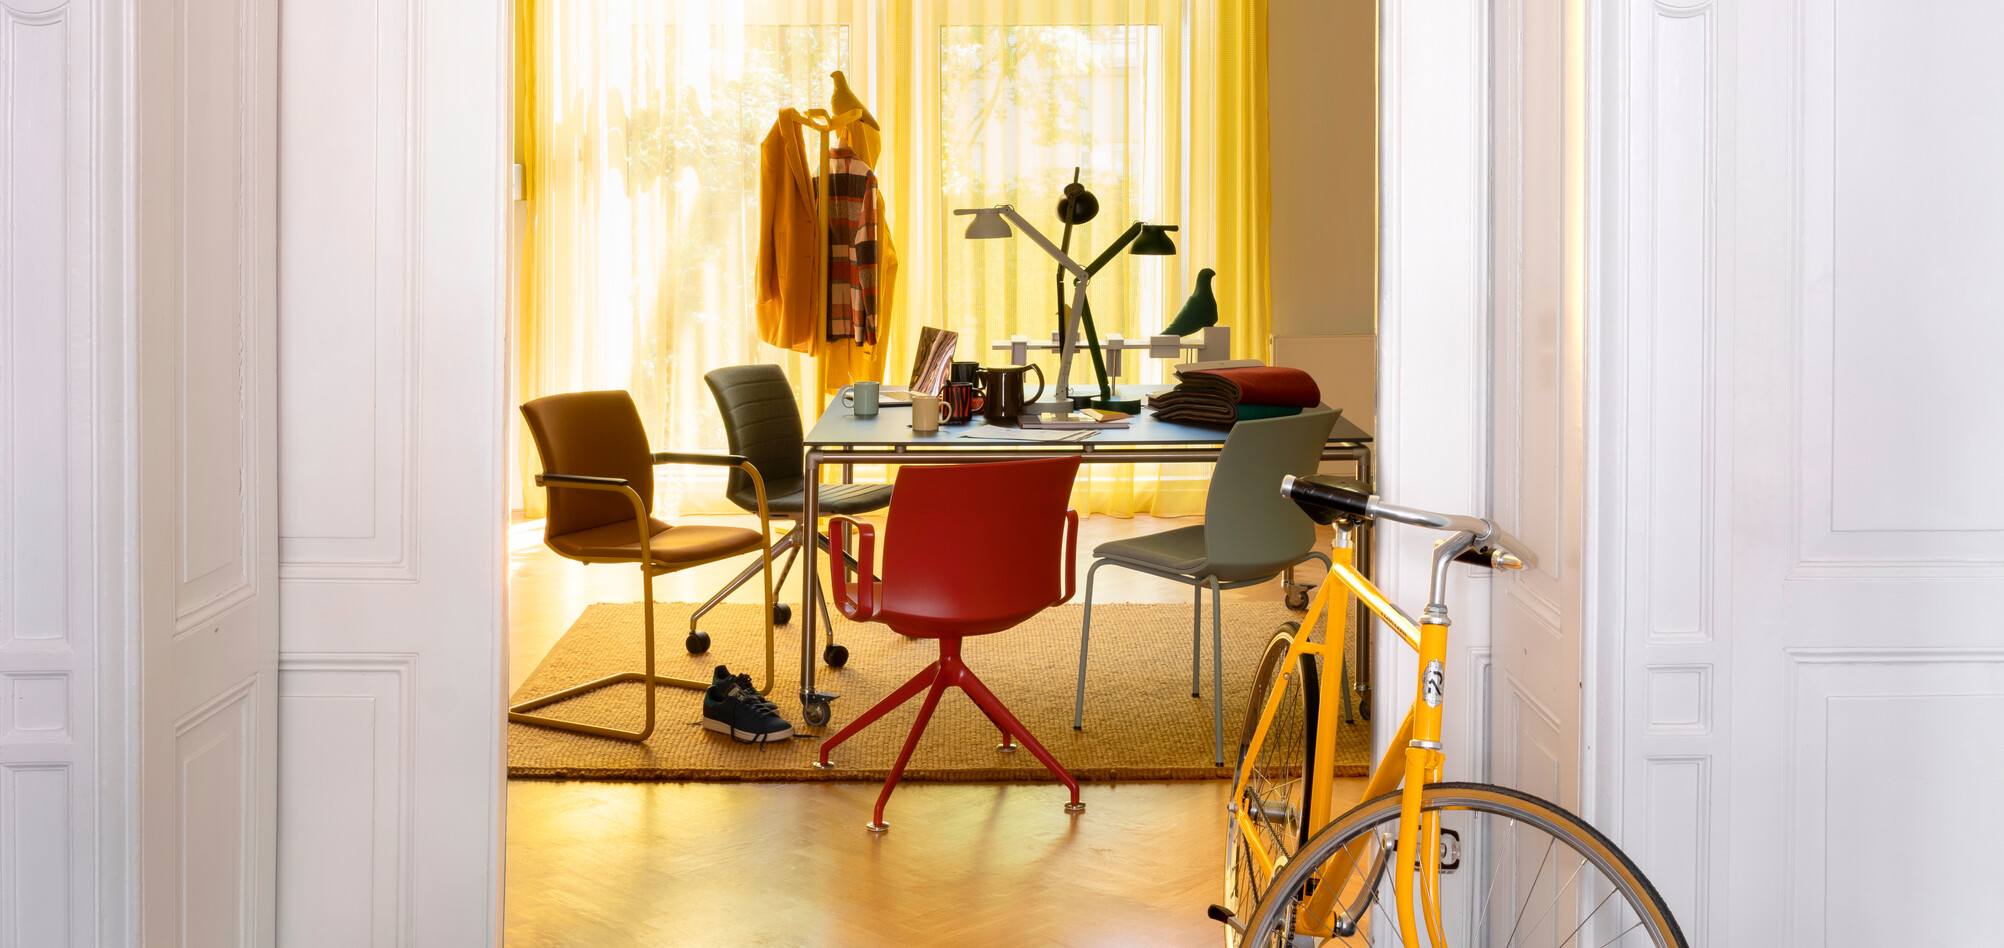 Royal Ahrend Well chairs with yellow bike at Kvadrat store in Amsterdam DSF3216